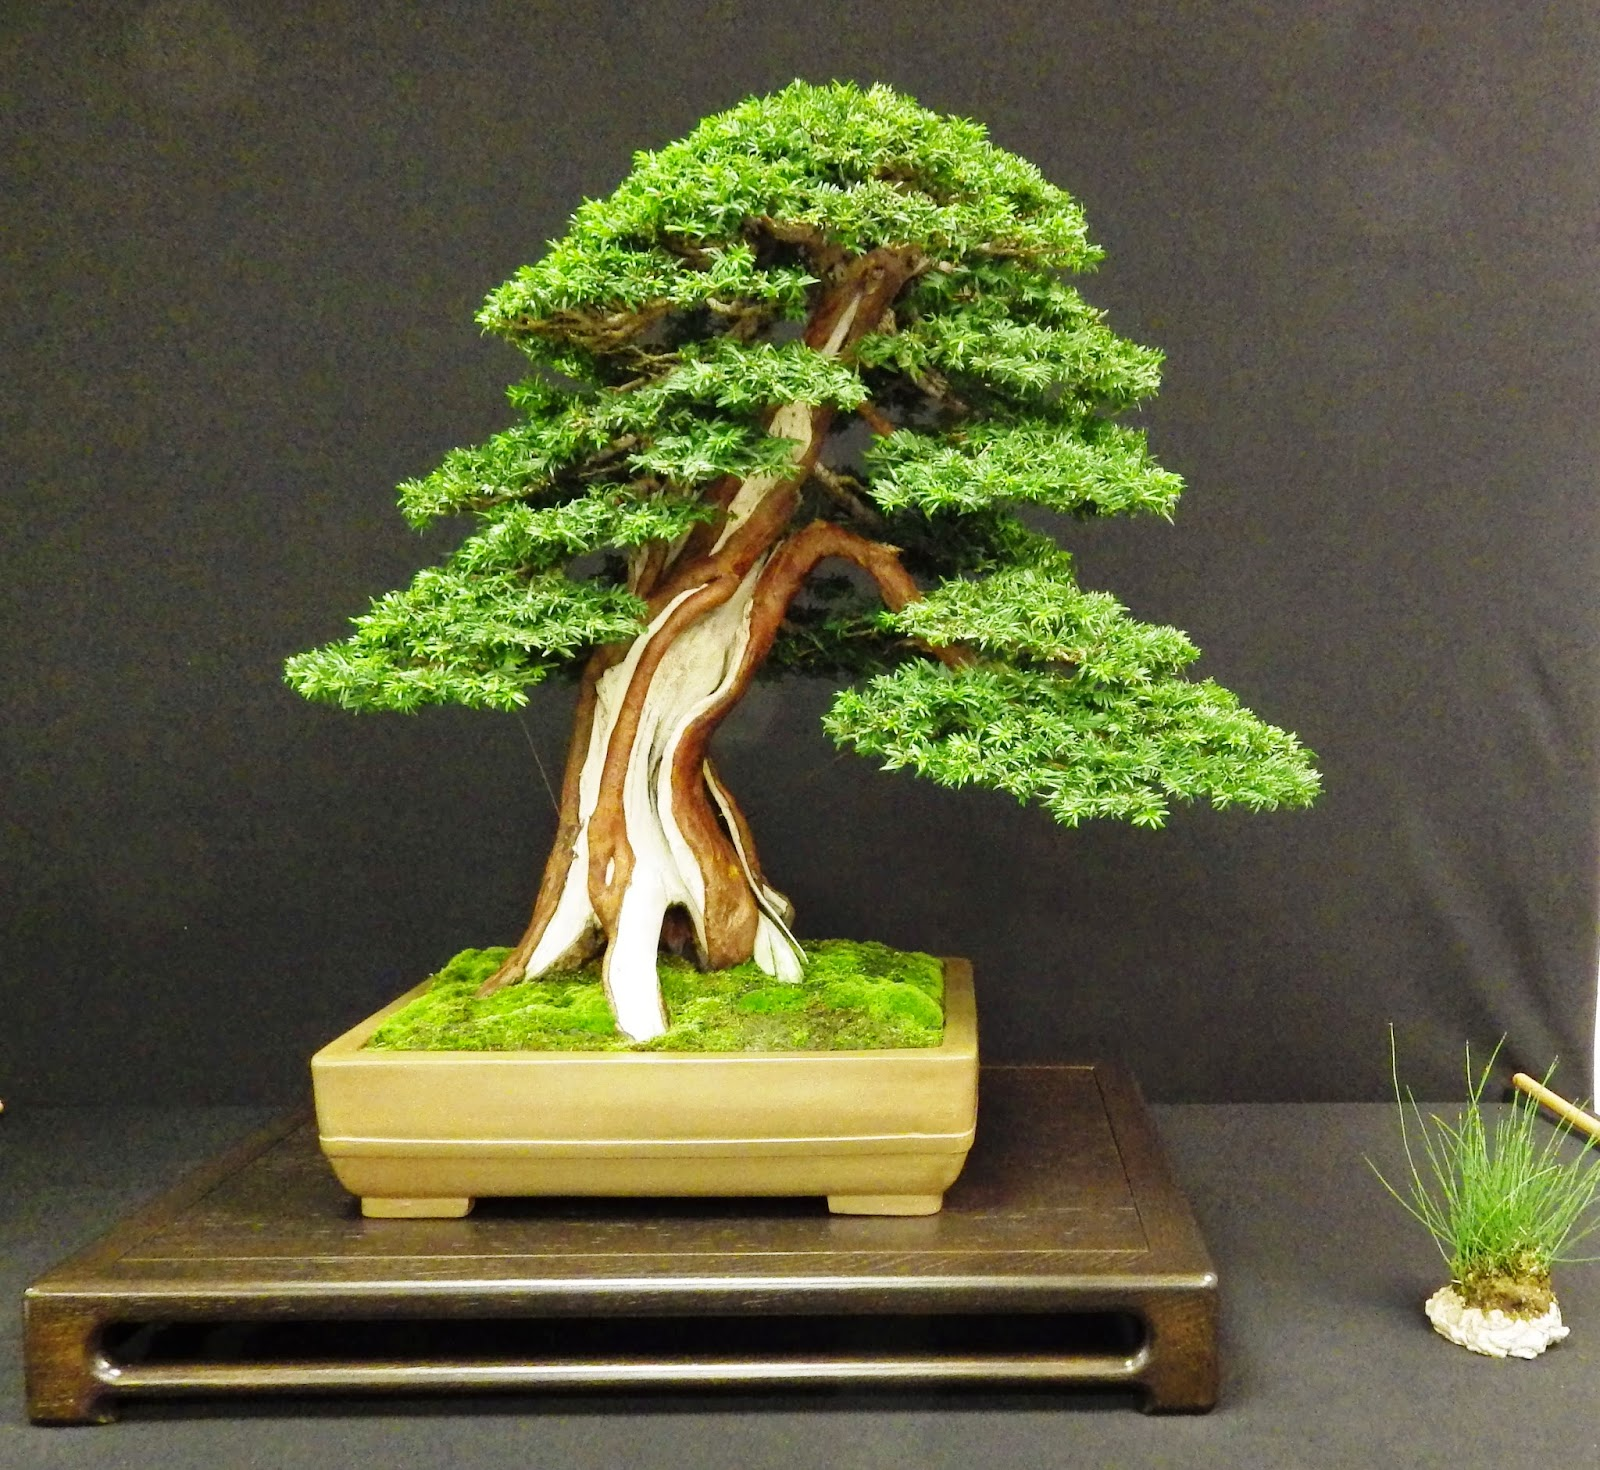 Bespoke Bonsai Stands Capel Manor Autumn Bonsai Show October 2014